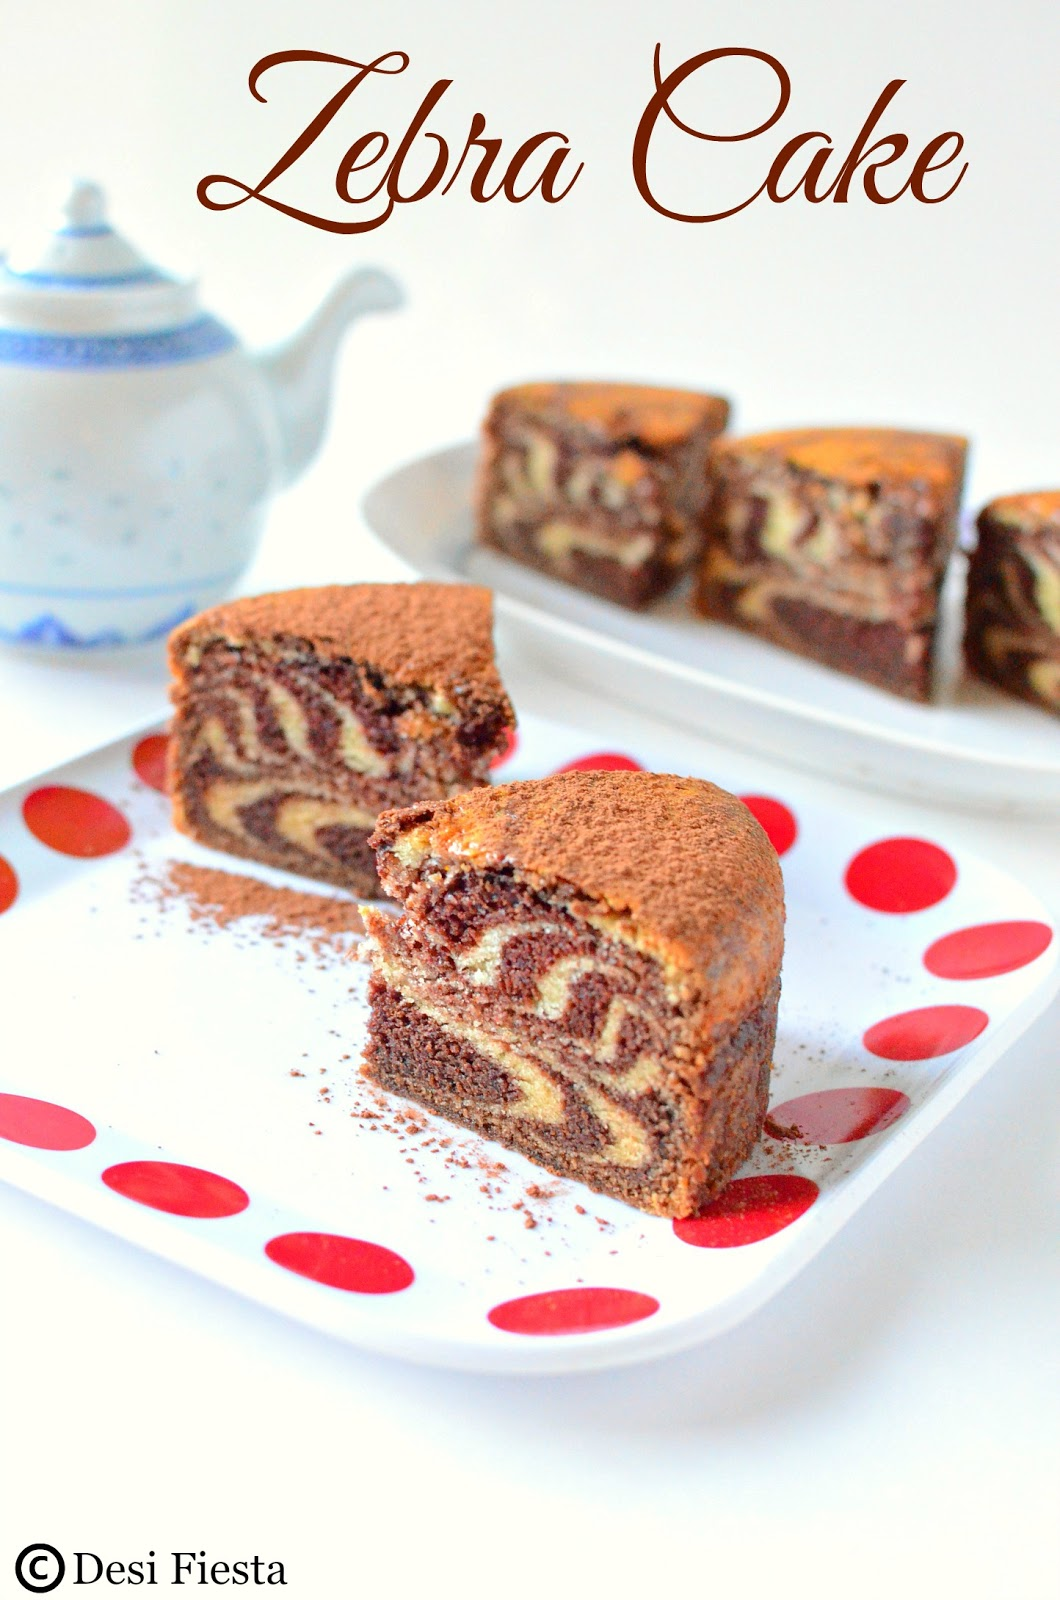 Cakes and pastries recipe